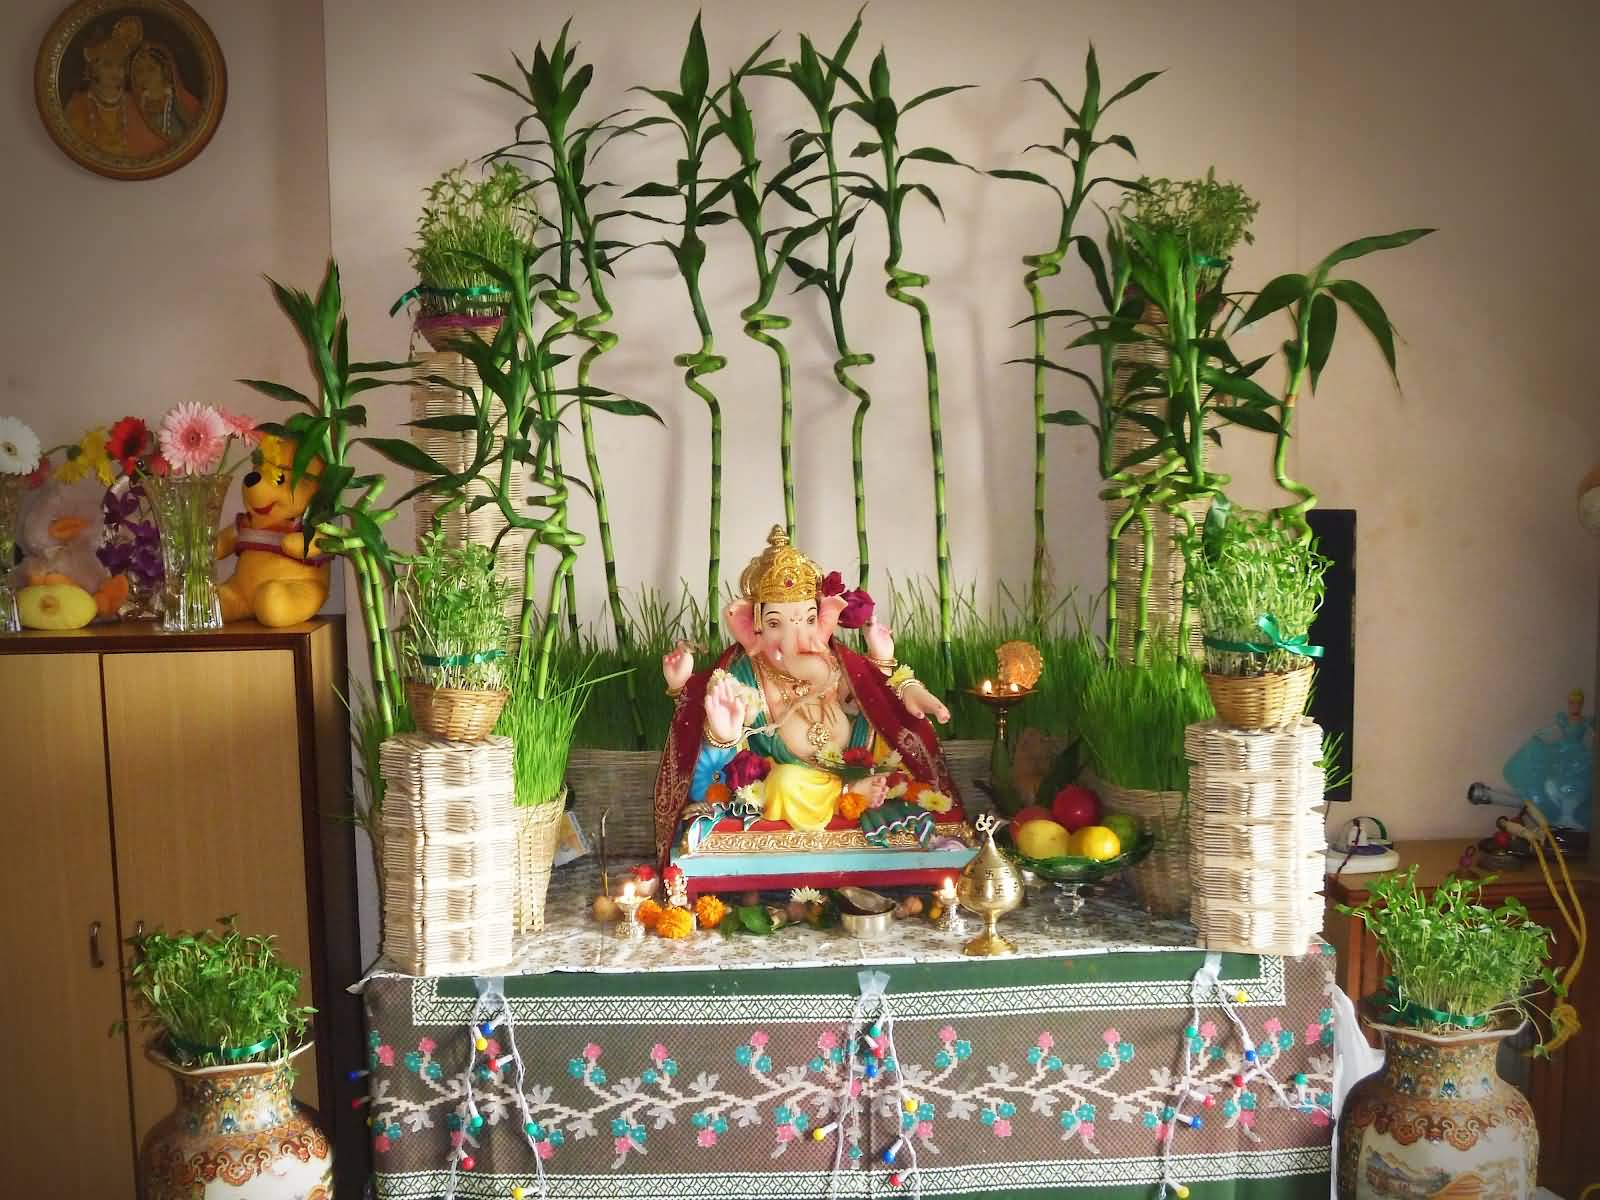 25 Incredible Ganesh Chaturthi Decoration Idea Pictures